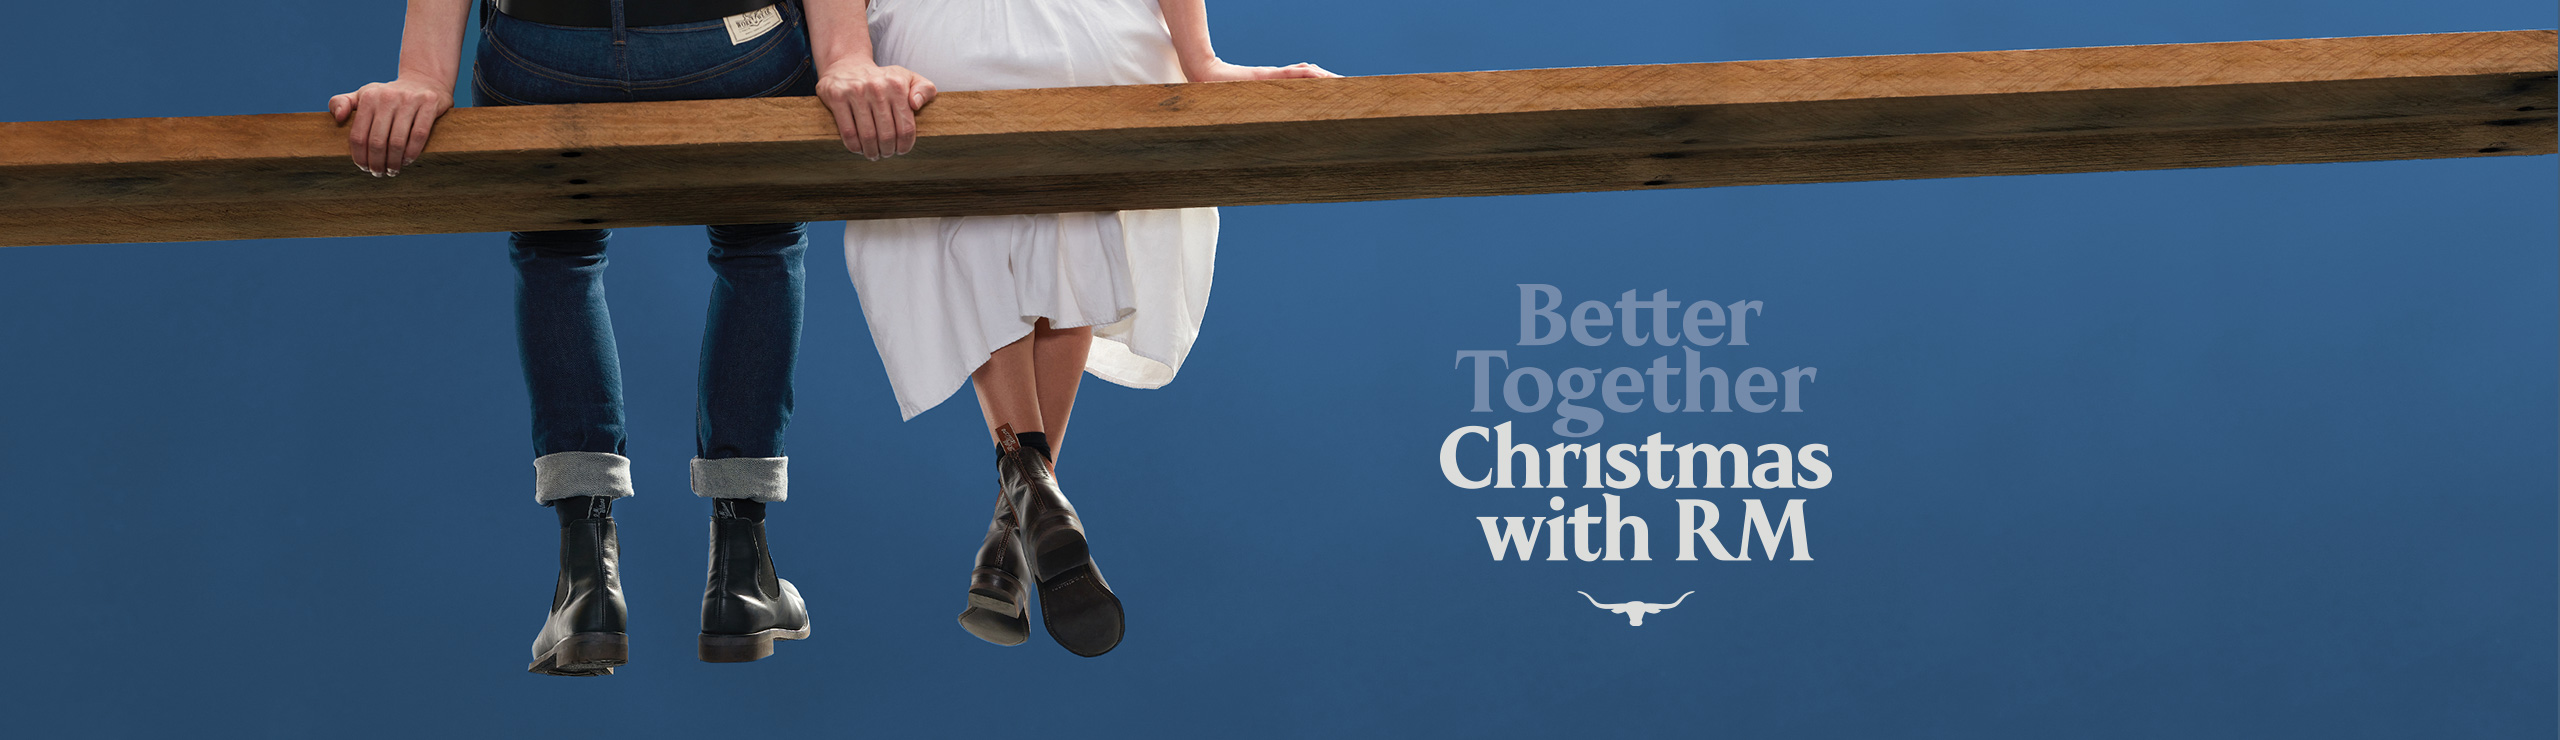 R.M.Williams Better Together Christmas with RM